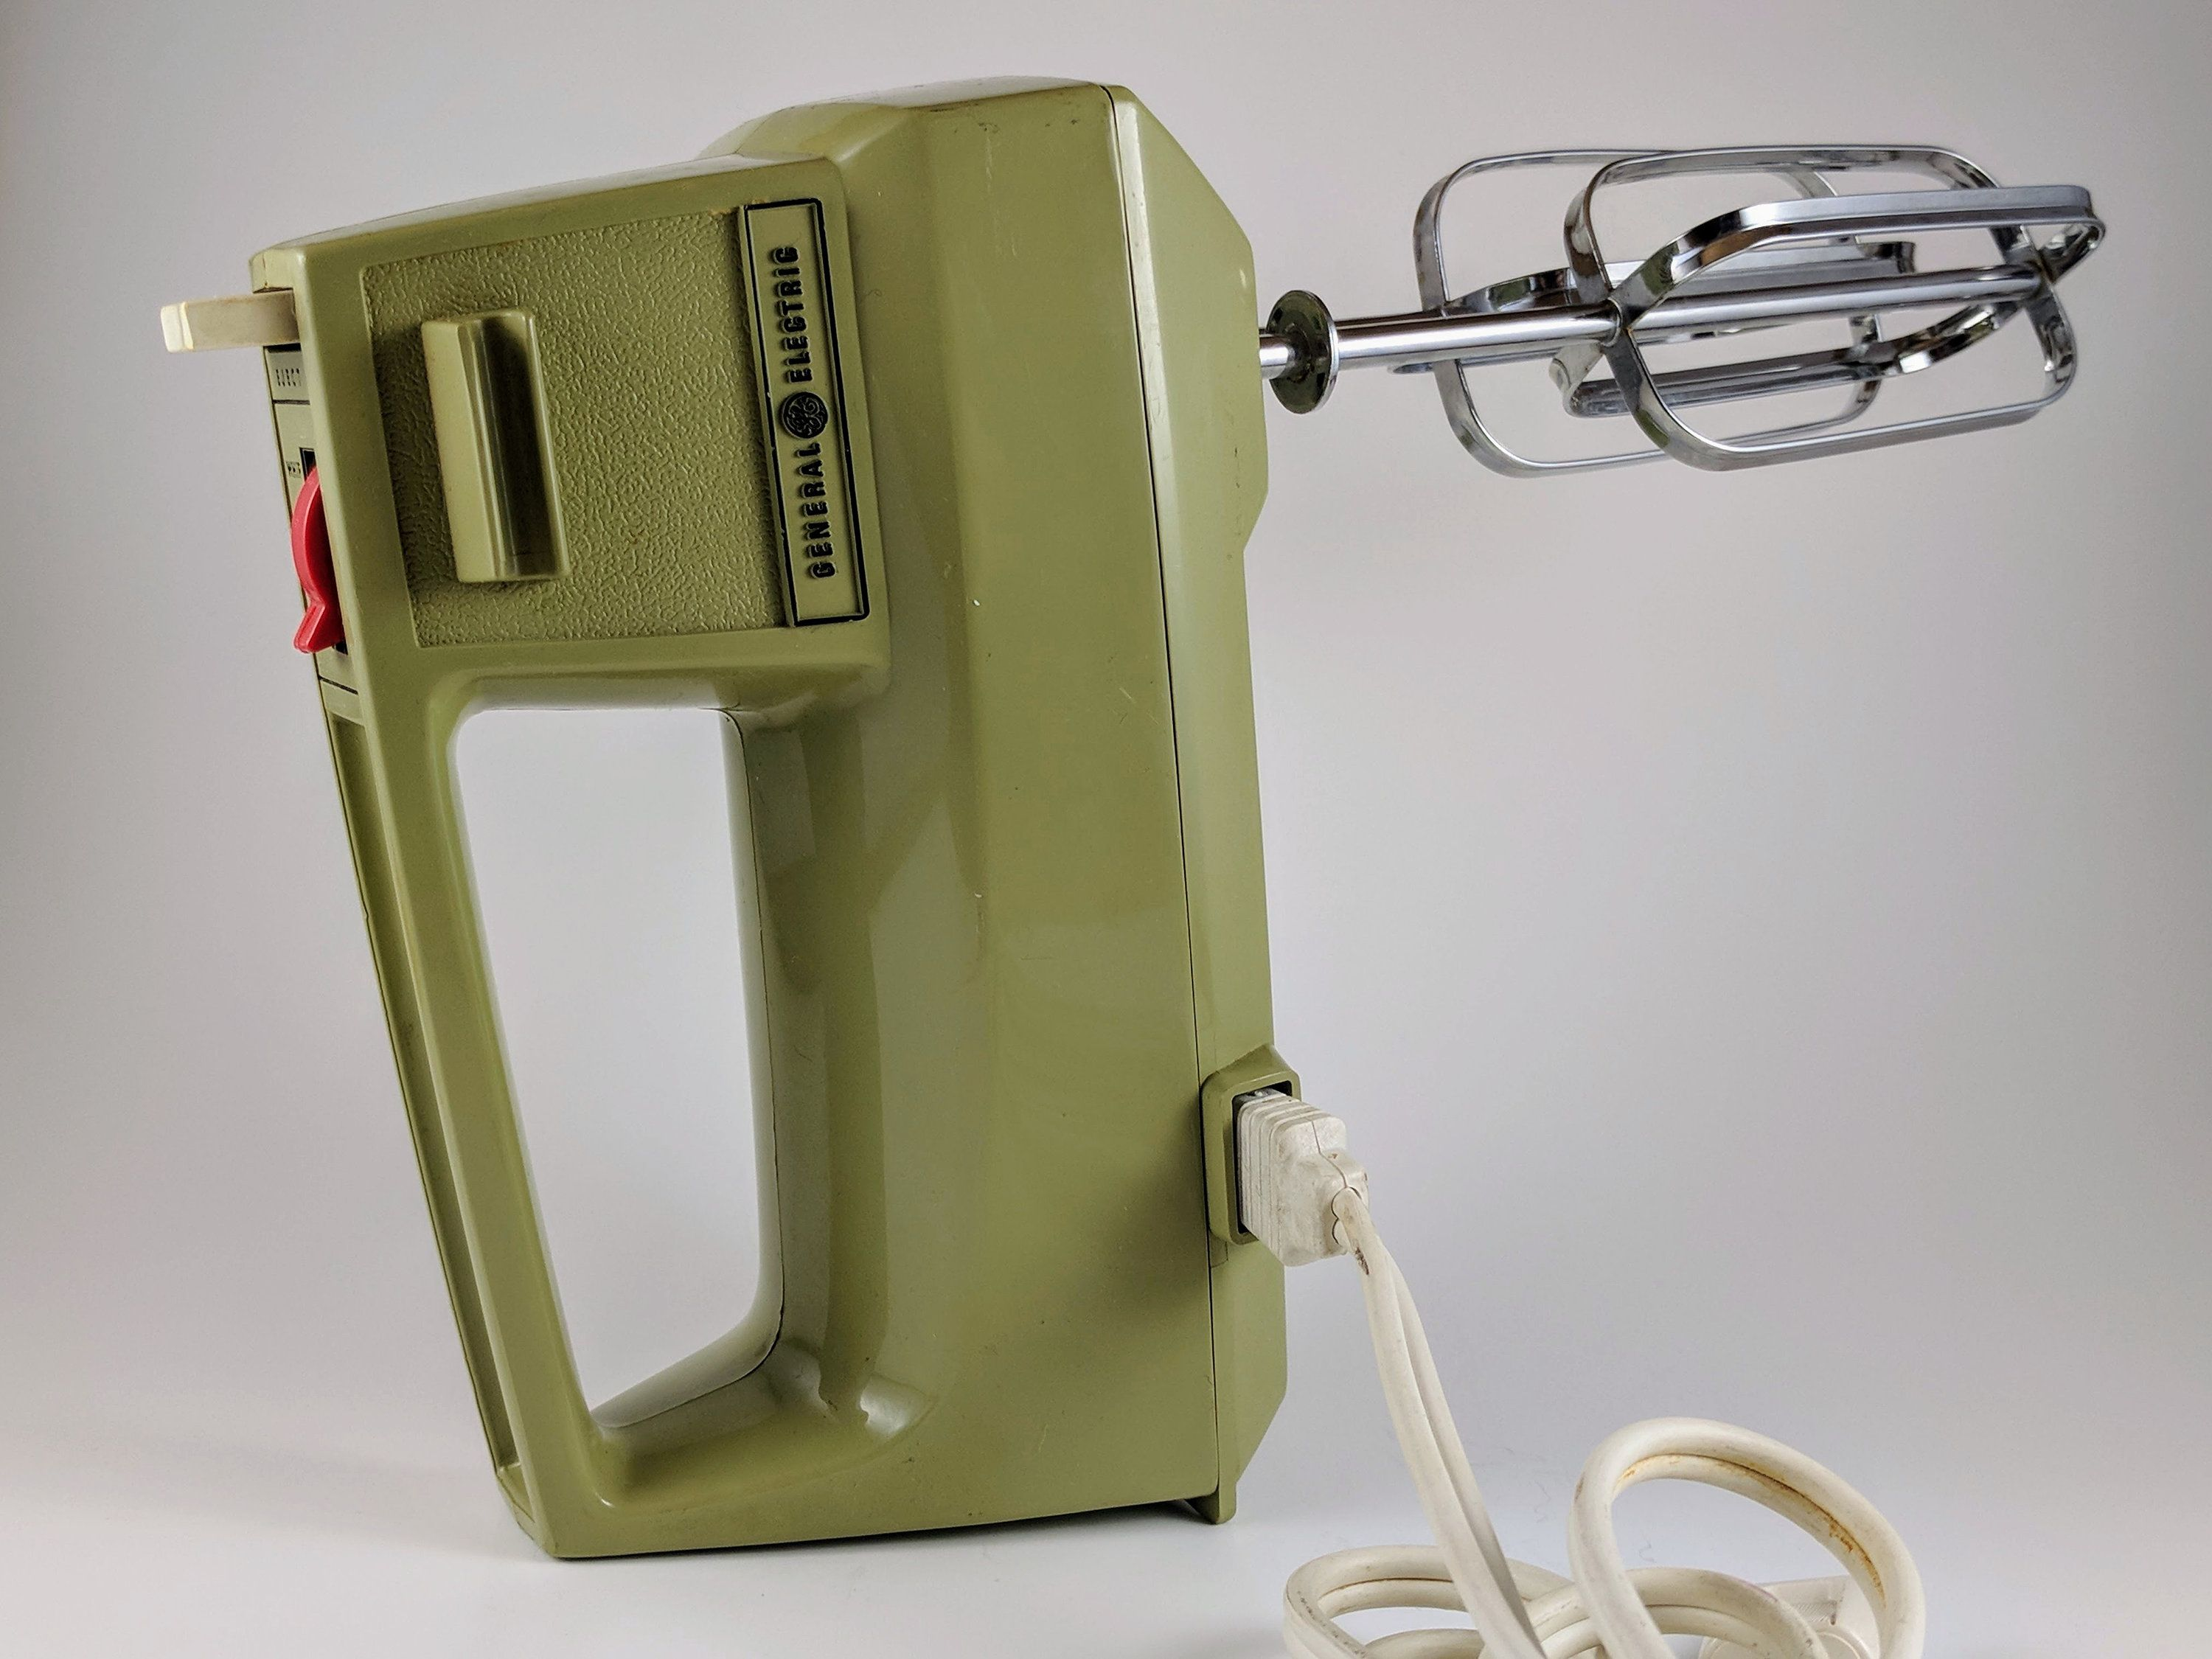 Vintage General Electric Hand Mixer 3 Speed Electric Portable D1 M24 Avocado Green With 6 Attachments By 5sran Electric Hand Mixer Hand Mixer General Electric